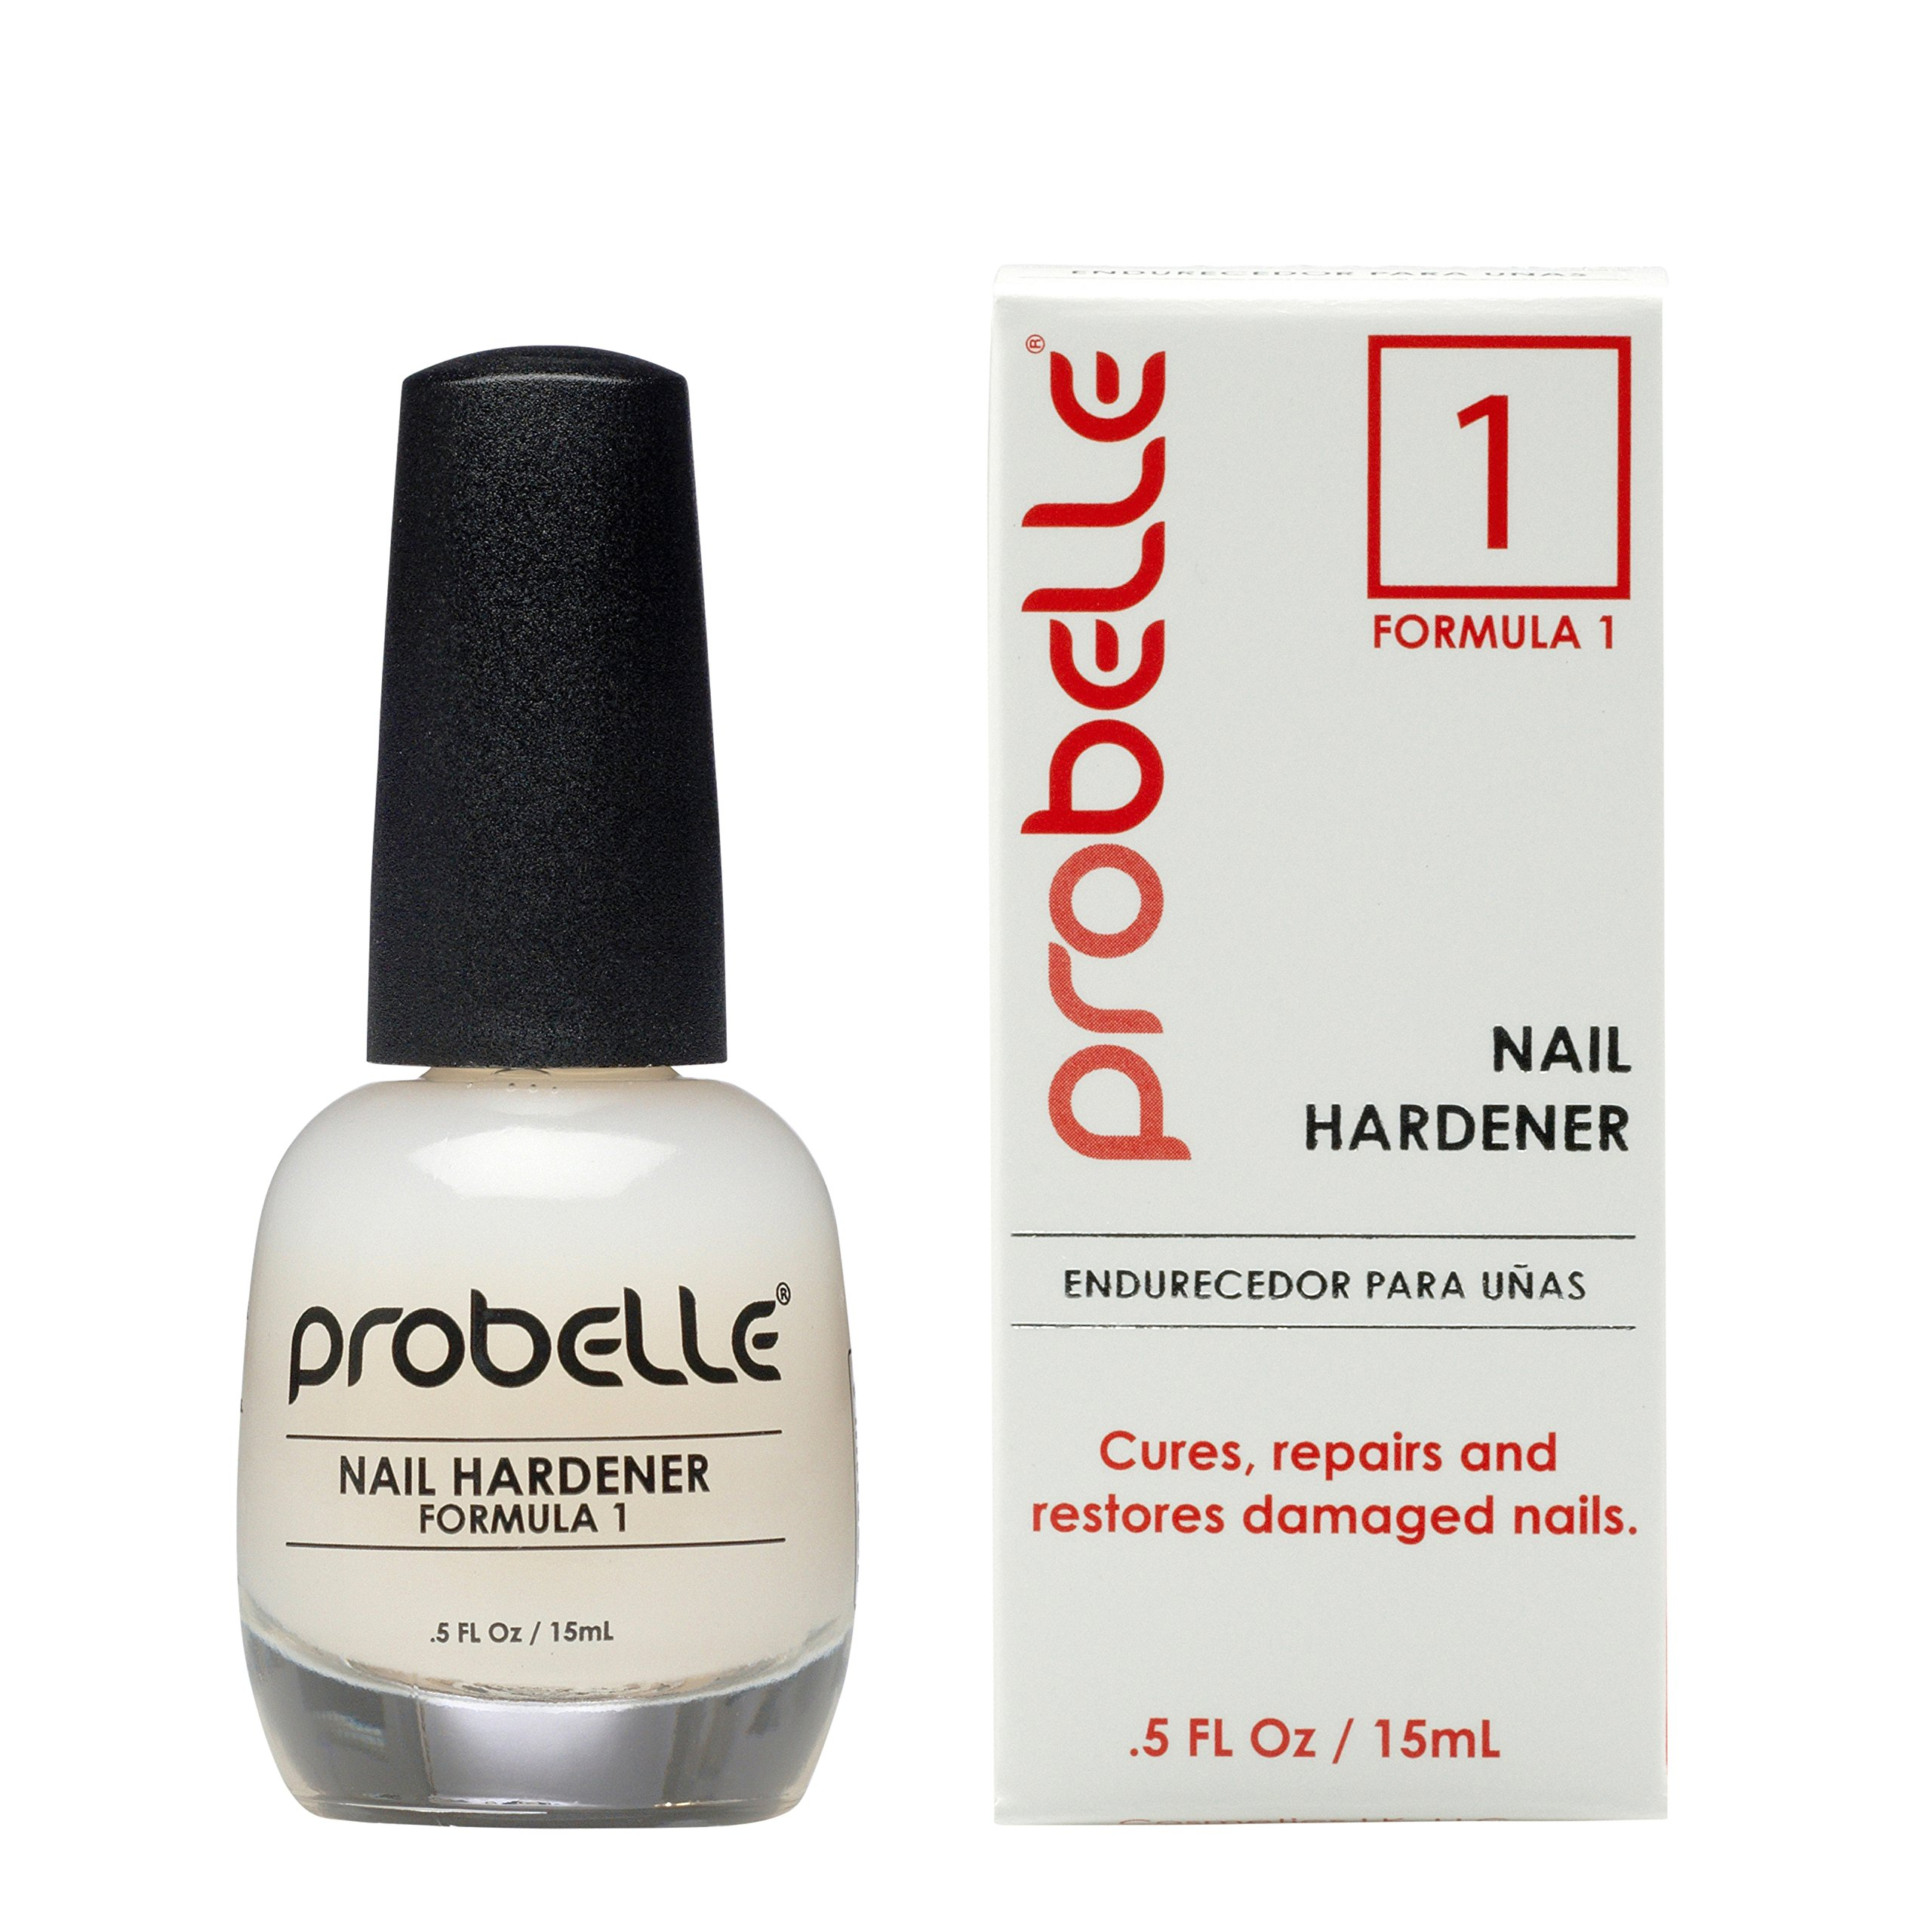 Probelle Nail Hardener Formula 1 - Grows and Restores thin, cracking, and peeling nails .5 fl oz/ 15 mL by Probelle